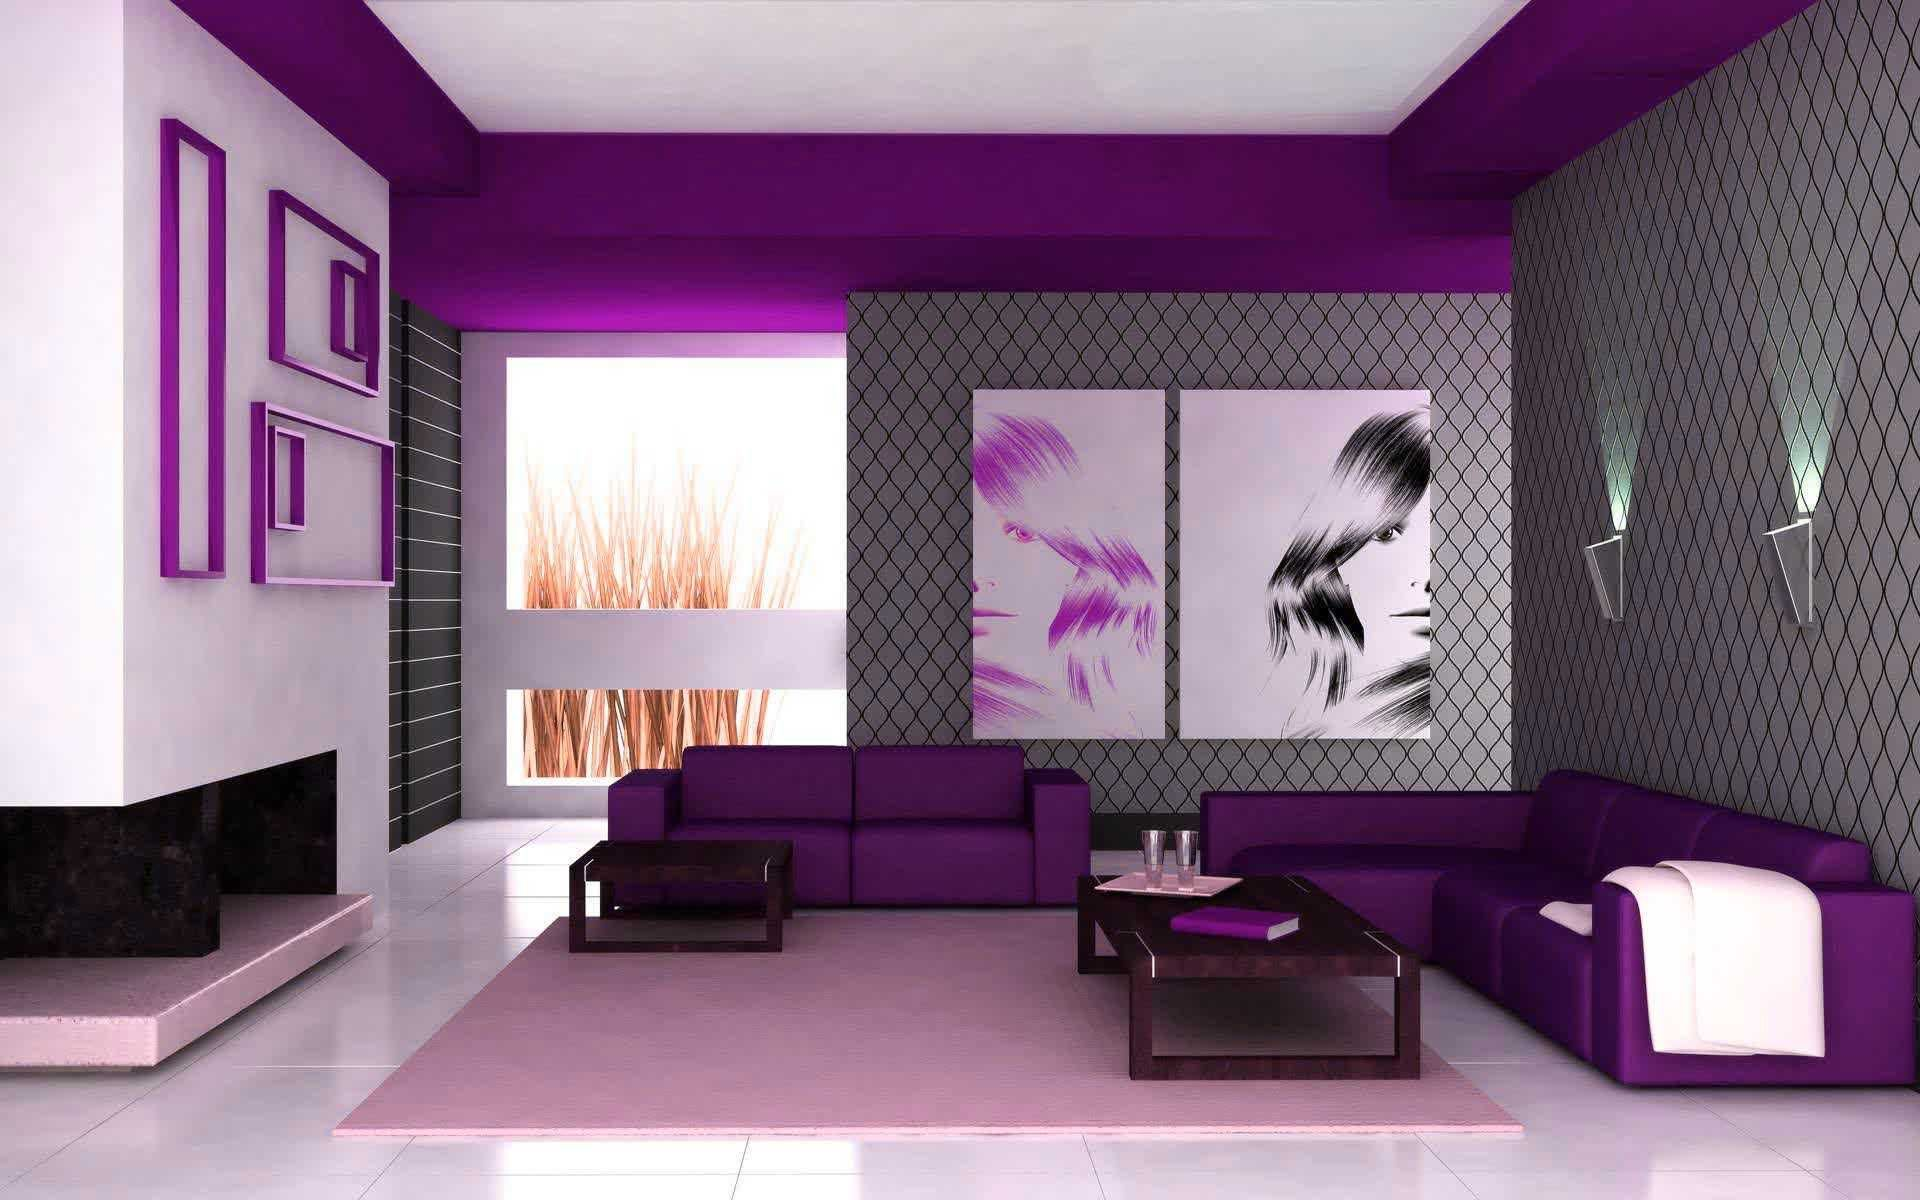 Bedroom Home Colour Paint Trends And Incredible House Painting Designs Colors Ideas In Nigeria Purple Living Room Room Colors Purple Wall Decor